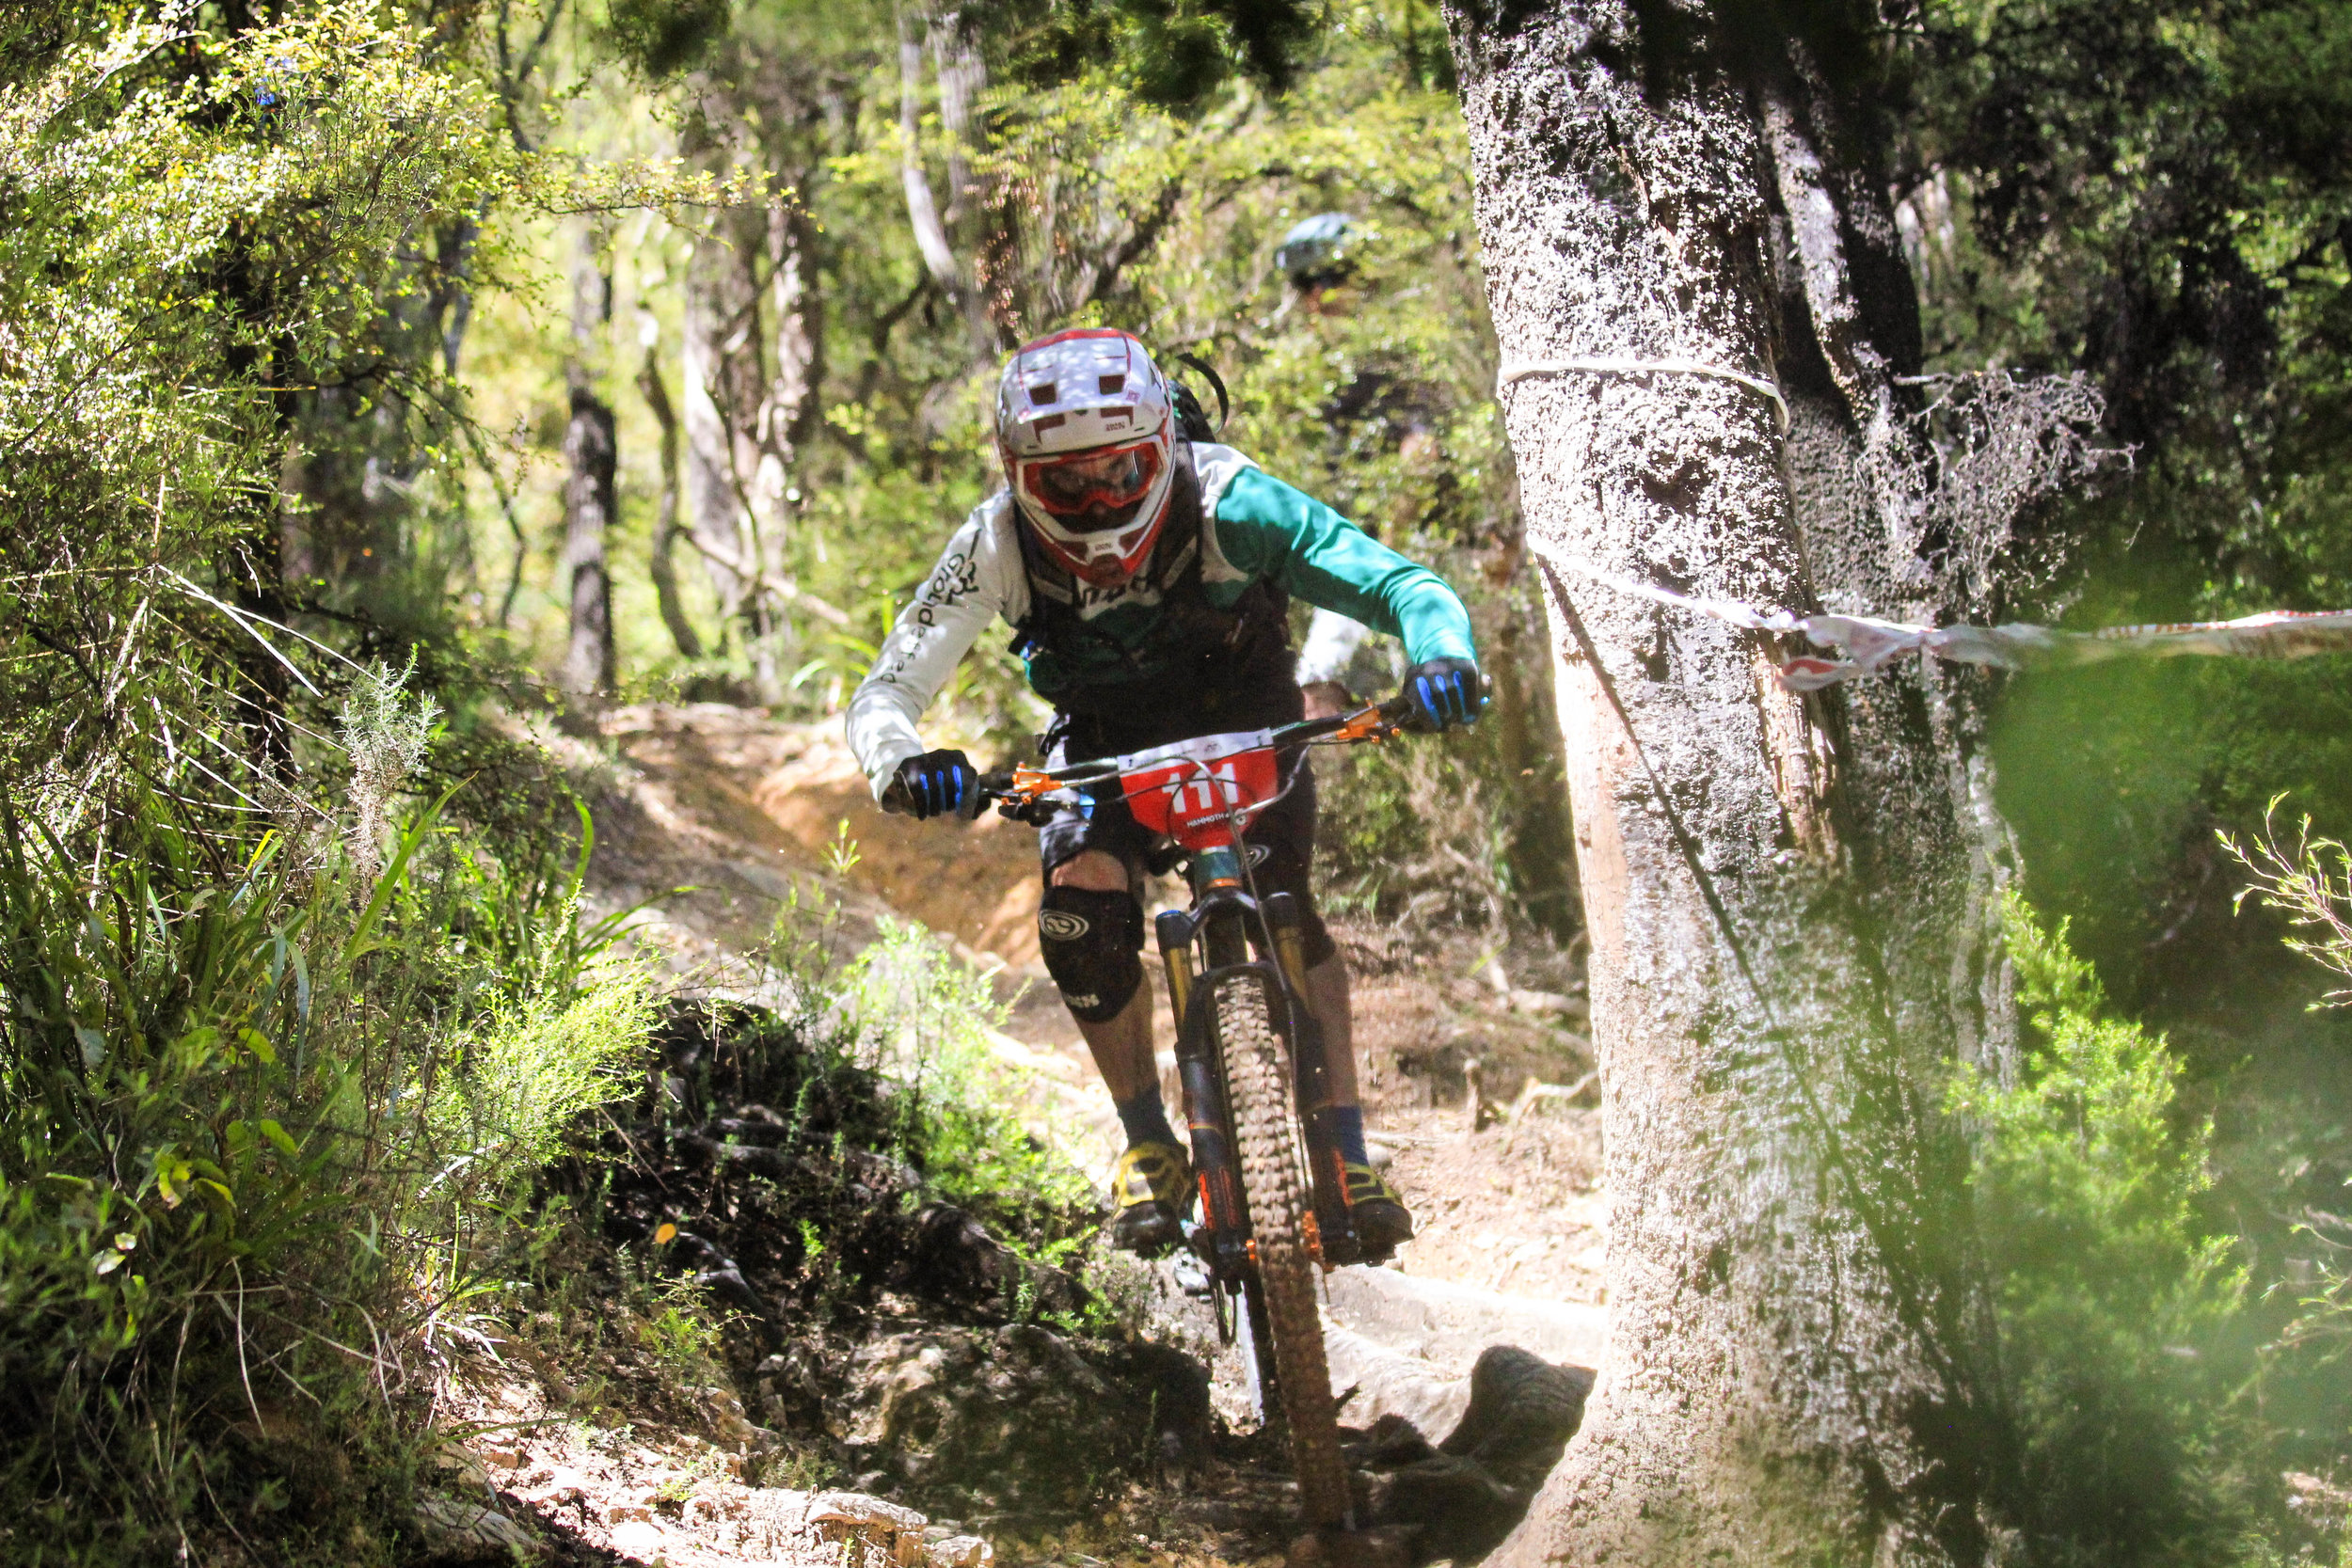 Not contacted to race in 2017, Jamie will be off adventuring!